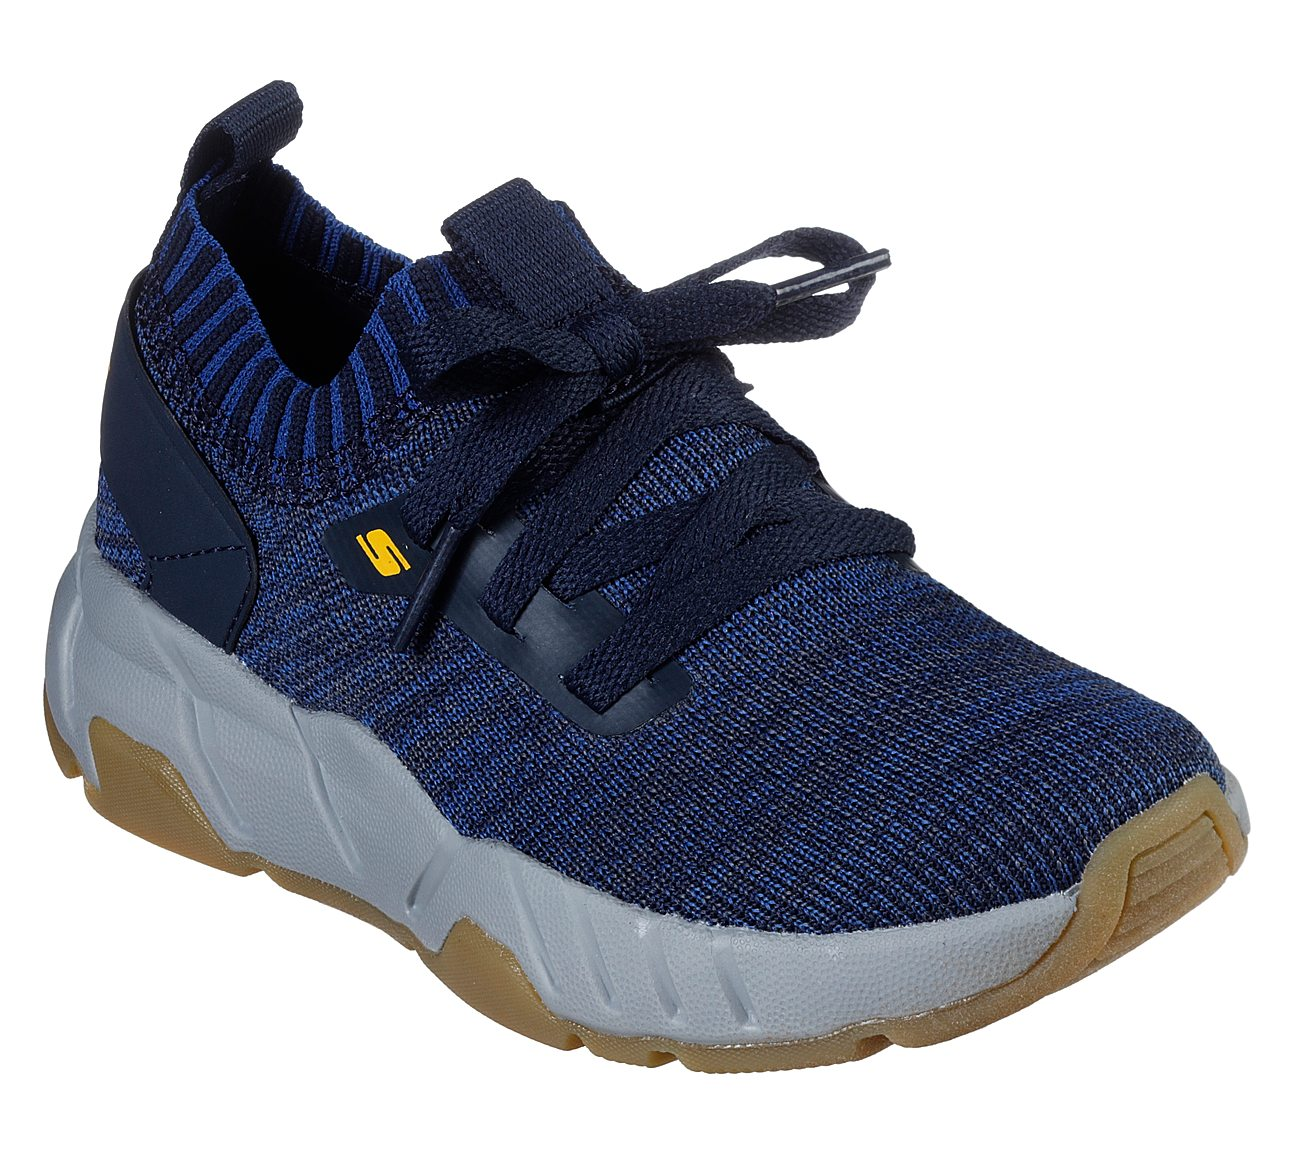 NAVY/CHARCOAL